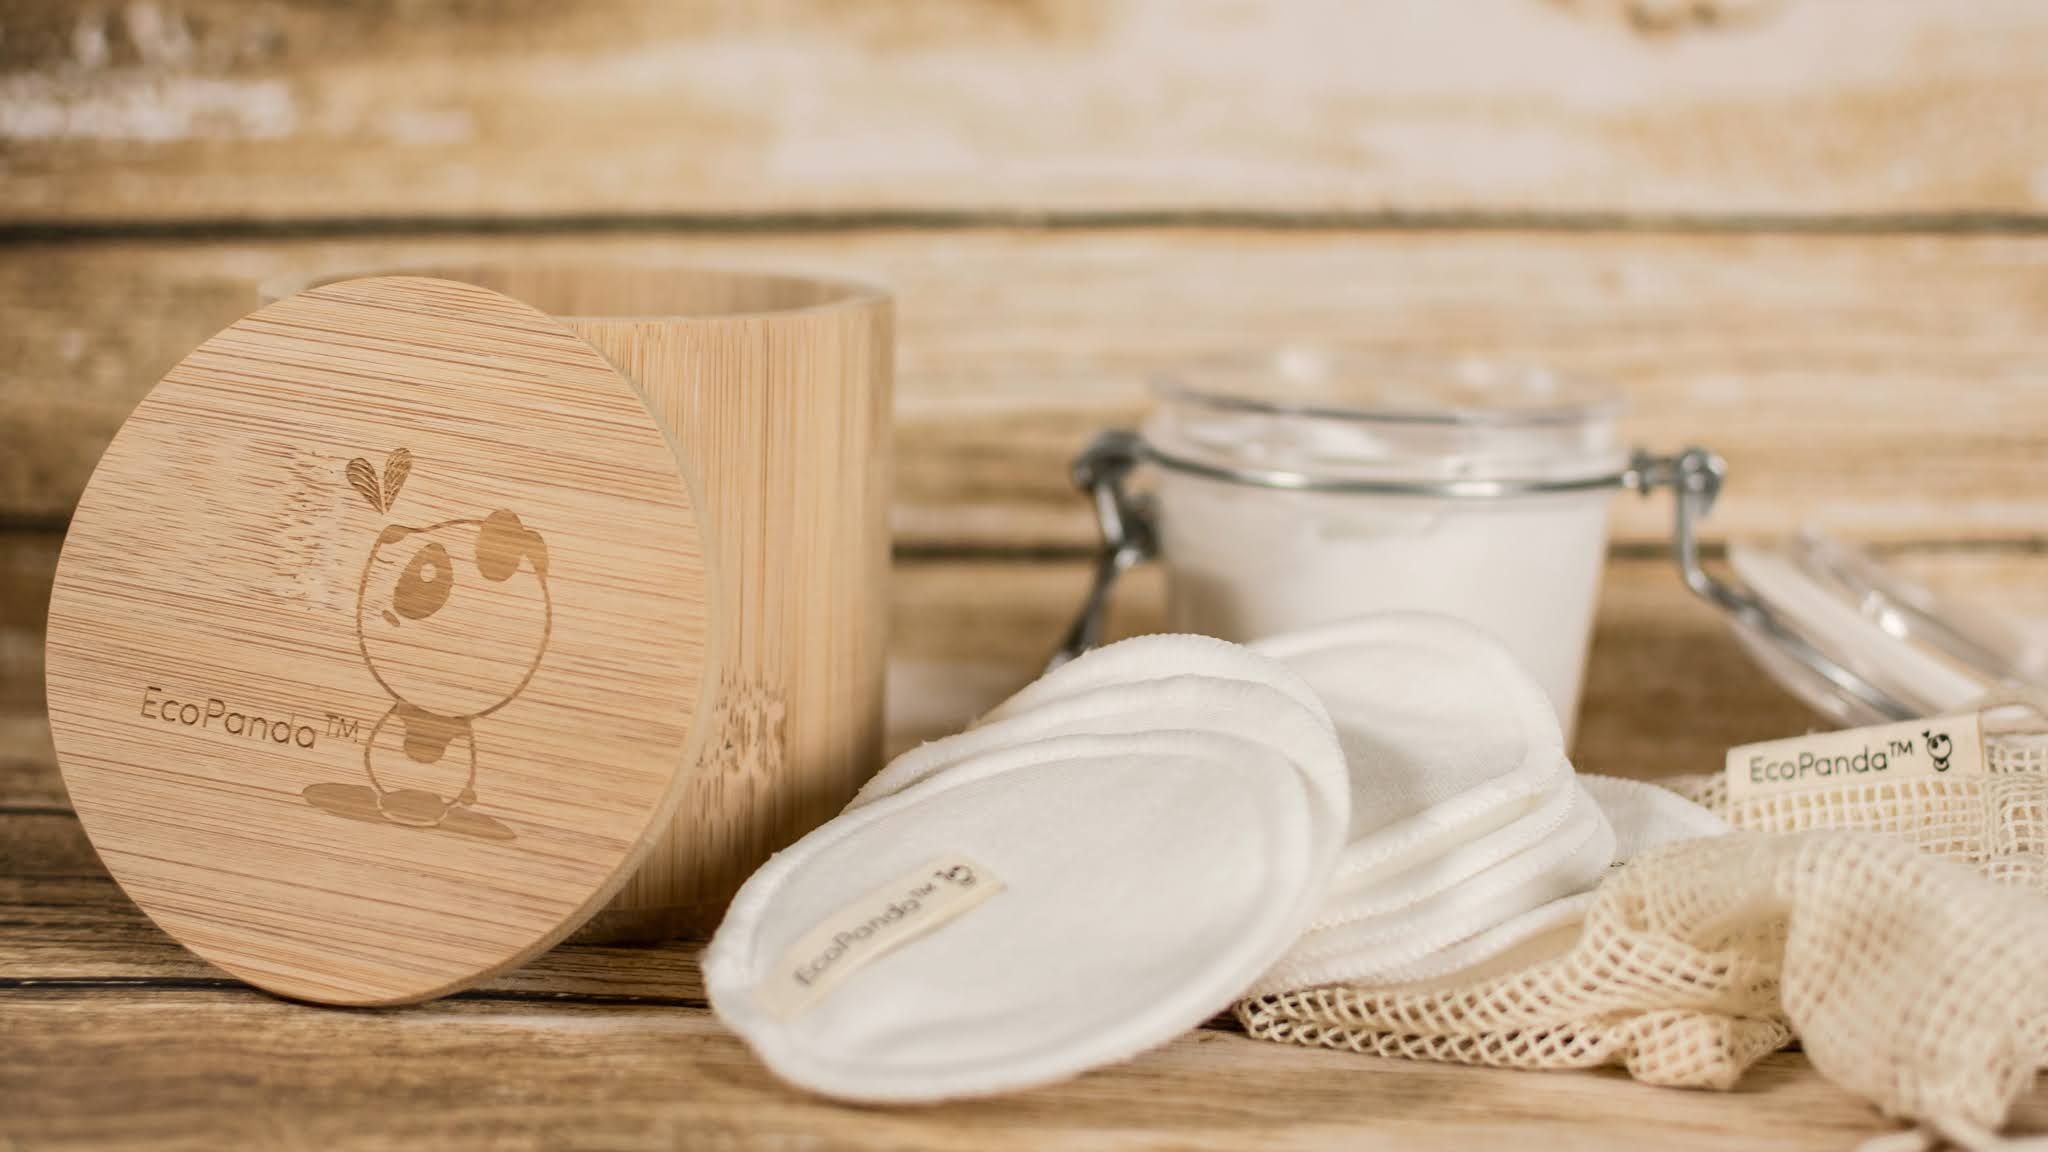 bamboo cotton pads and clear glass jar